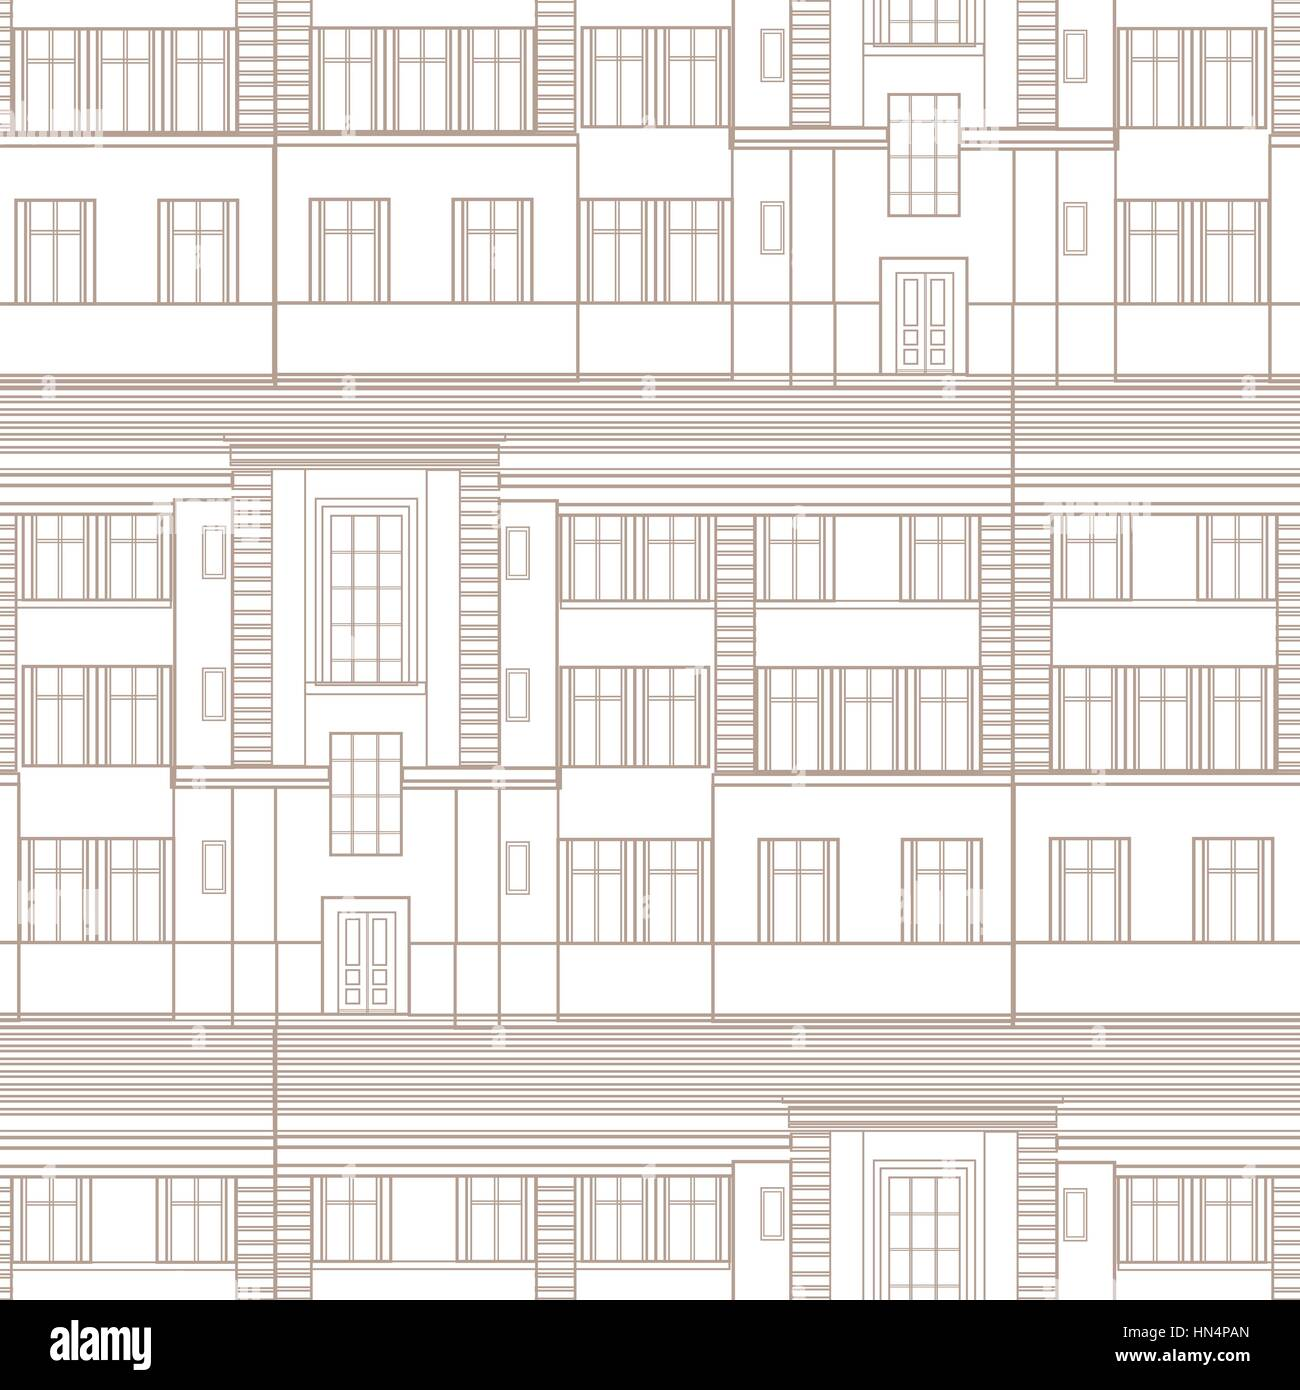 Building facade seamless pattern city architectural blueprint line building facade seamless pattern city architectural blueprint line background design element malvernweather